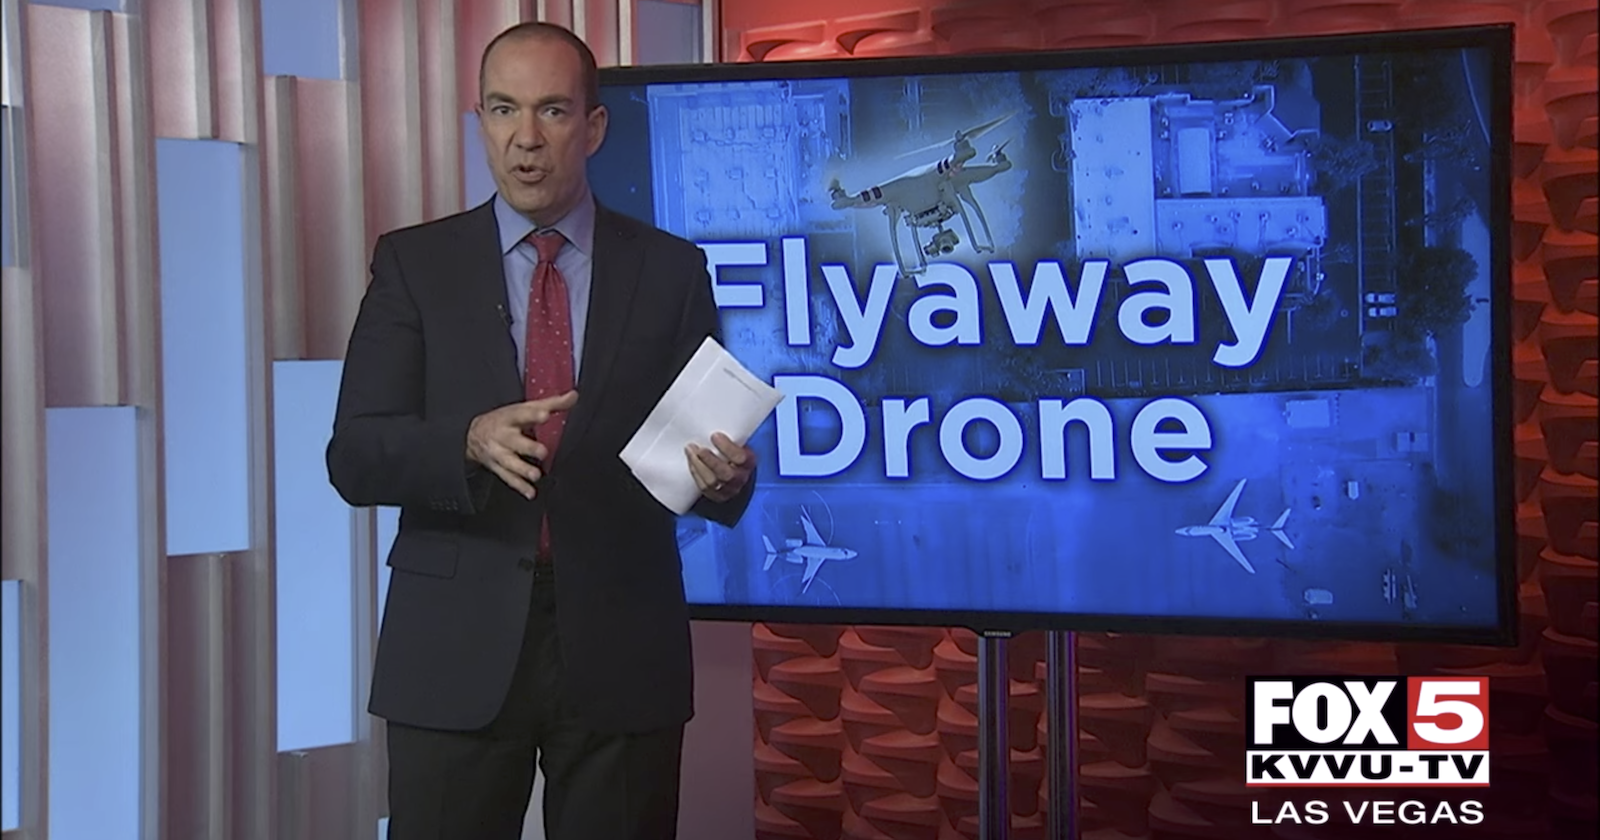 Man Fined Nearly $20,000 After His Runaway Drone Flew Over Las Vegas and Landed at an Airport